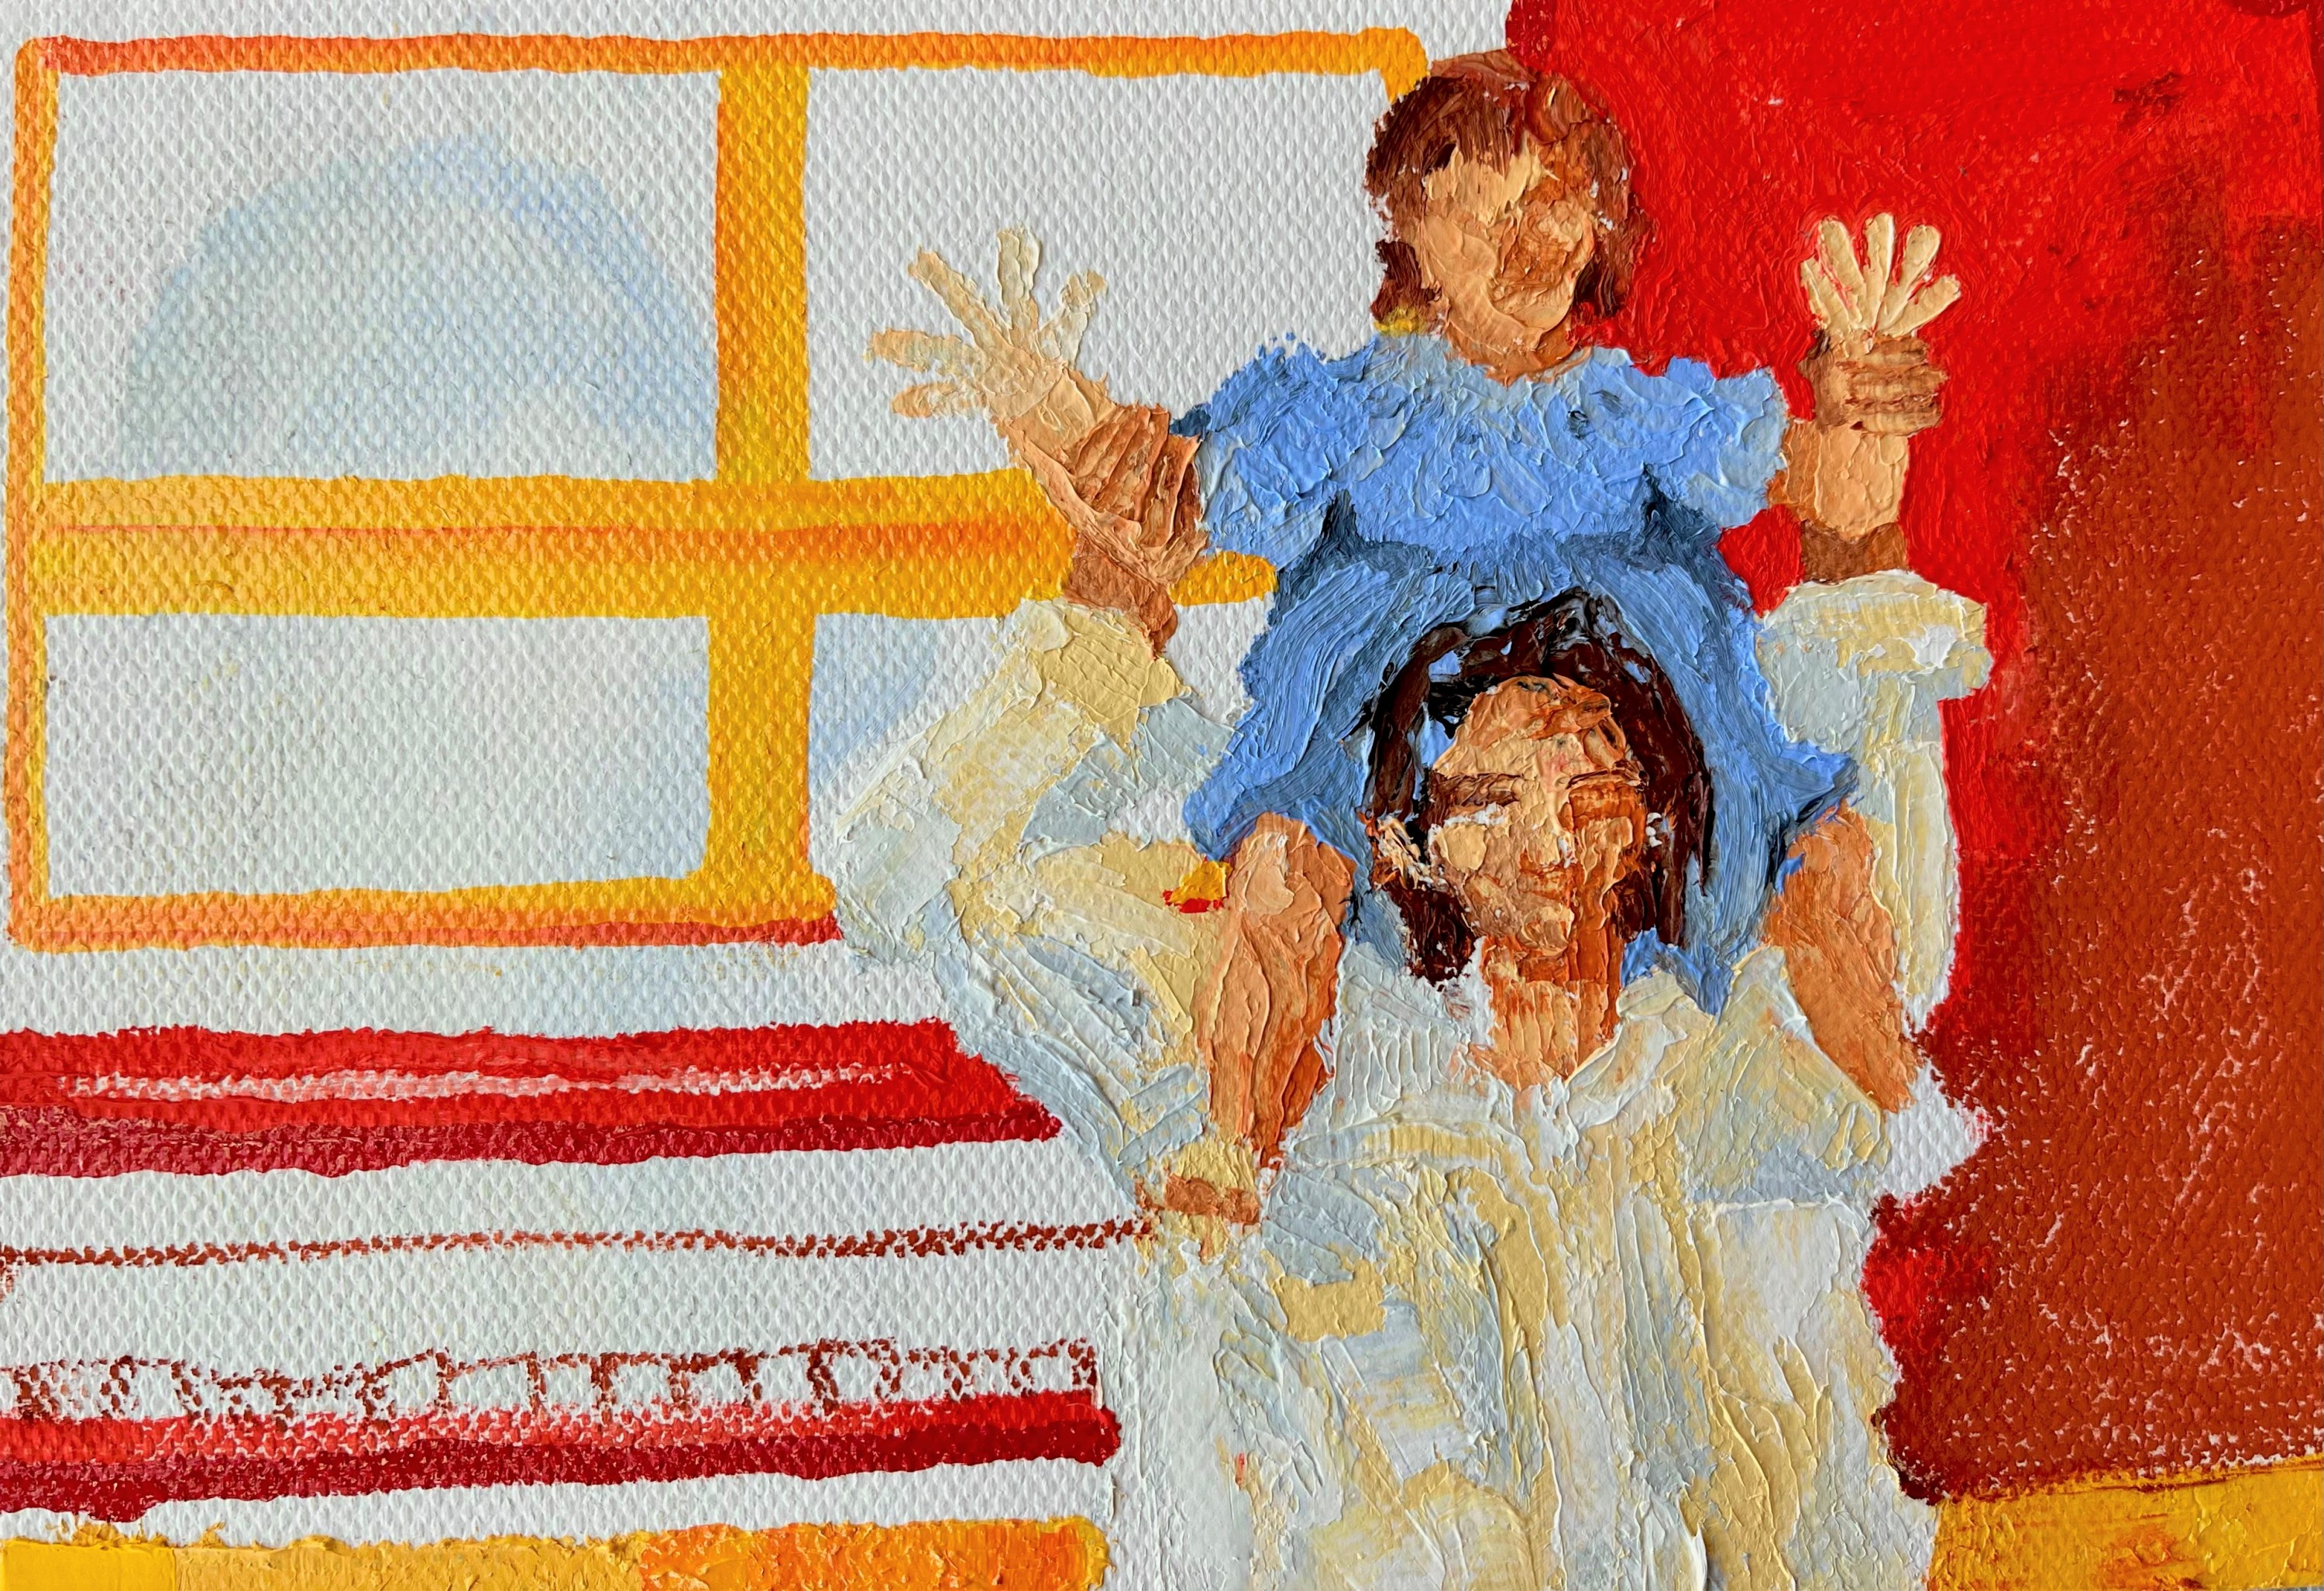 A young girl sits on her mother's shoulders. The girl wears a light blue dress and the mother wears a white button down shirt. The mother holds up the daughters arms. The background is flat with red on the right quarter, and the left a combination of red